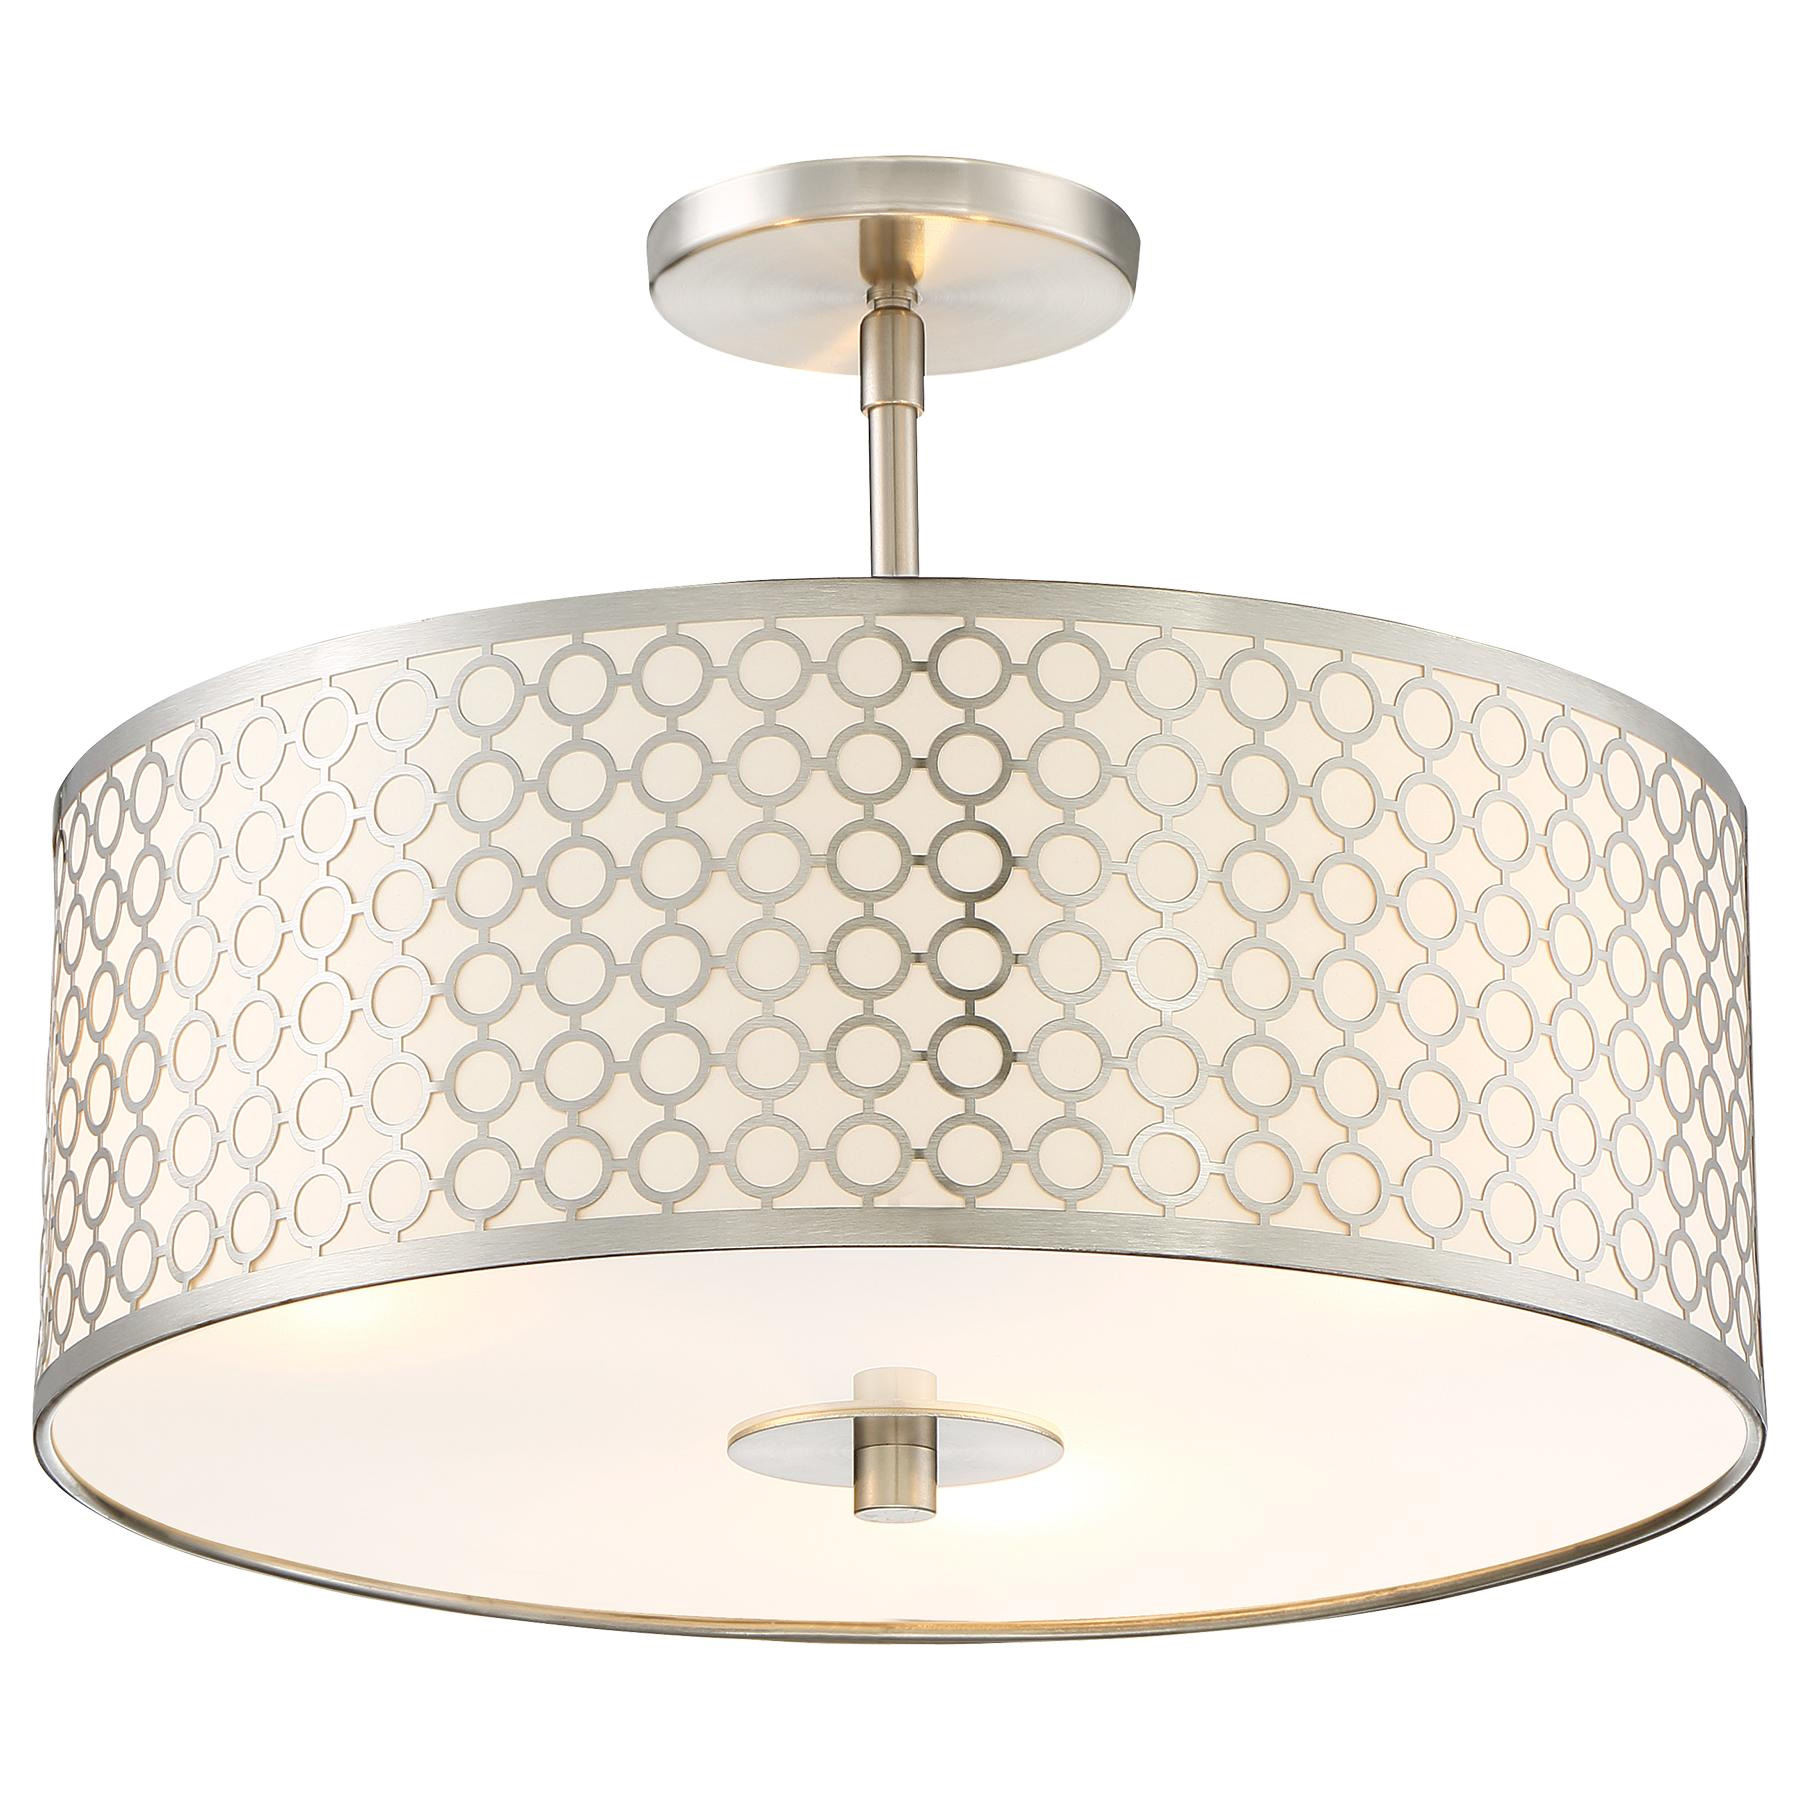 lighting depot circular integrated flushmount ceiling flush n light decorators lights the brushed collection home patterned led b semi with nickel